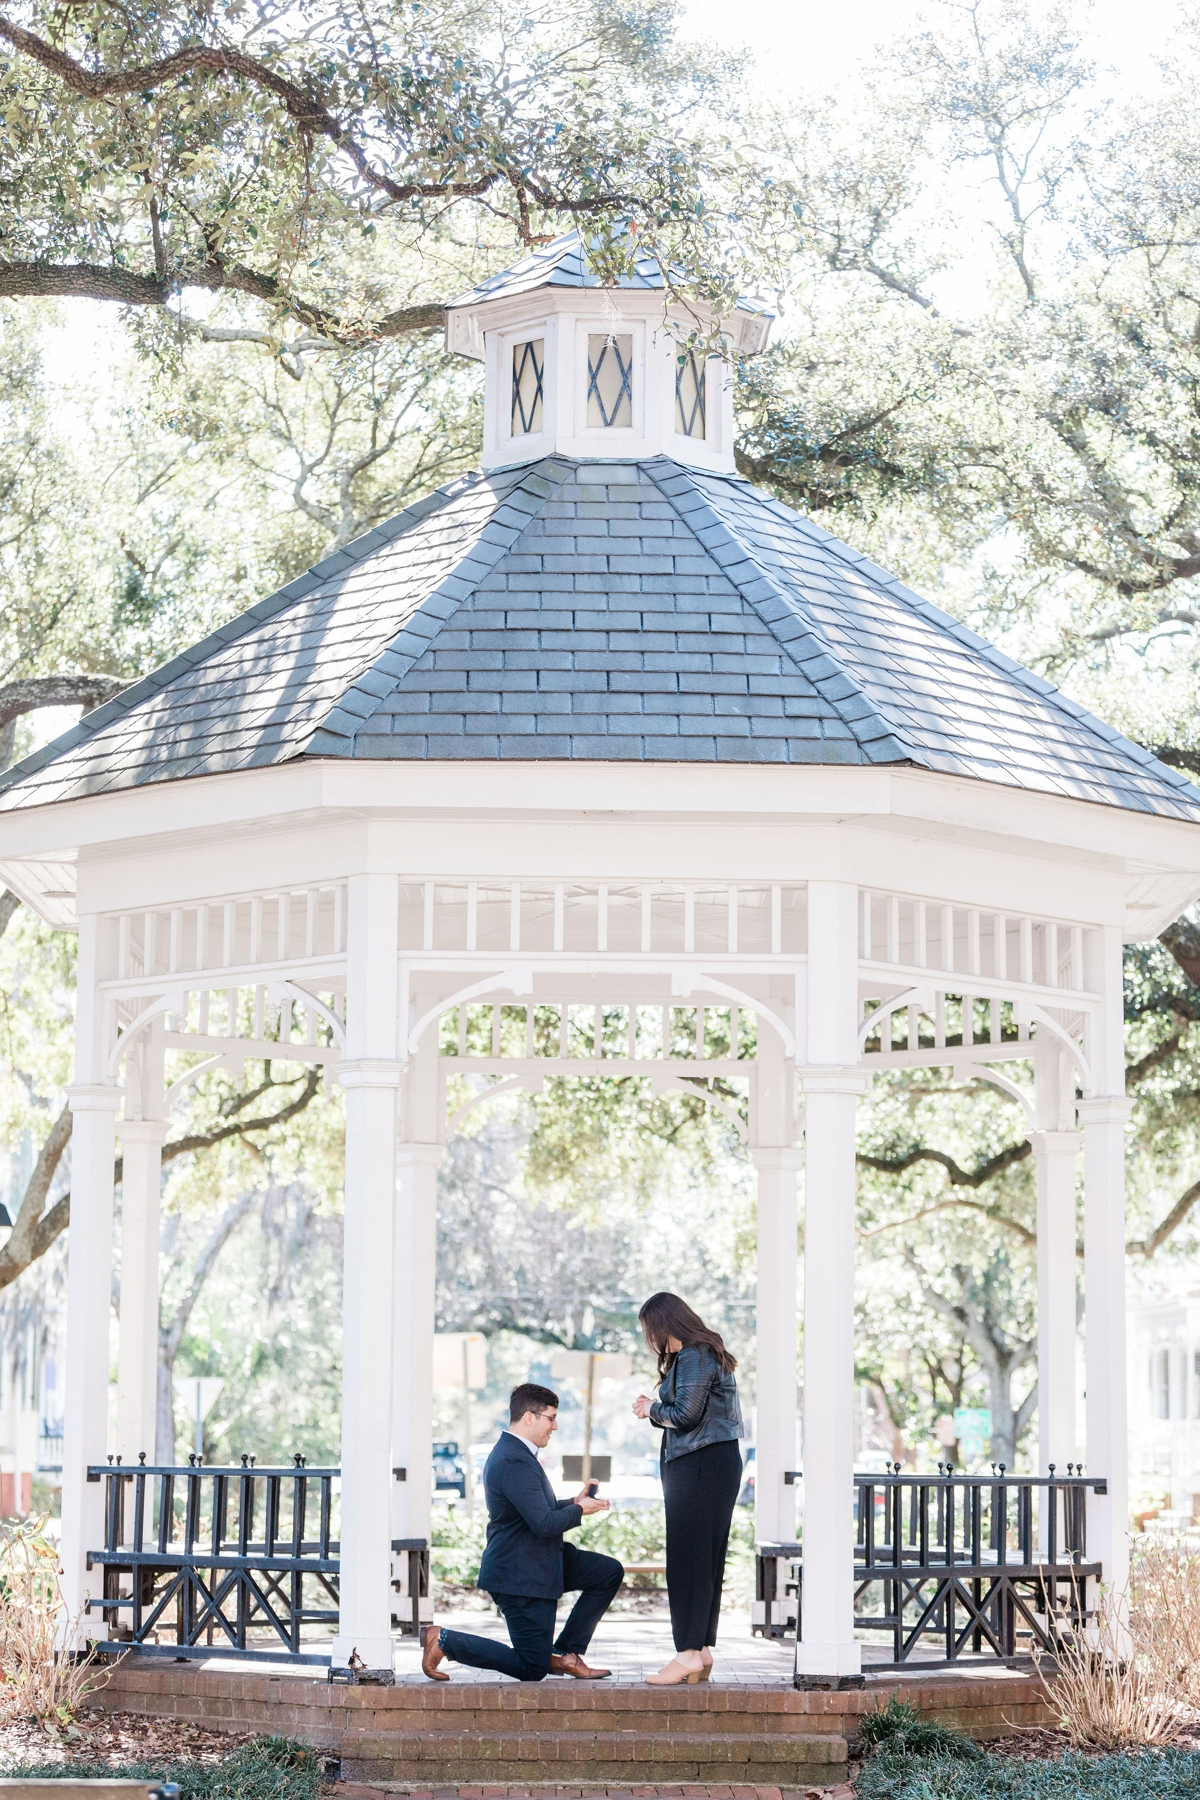 Sam and Paige's surprise proposal at Whitefield Square in Savannah, Georgia